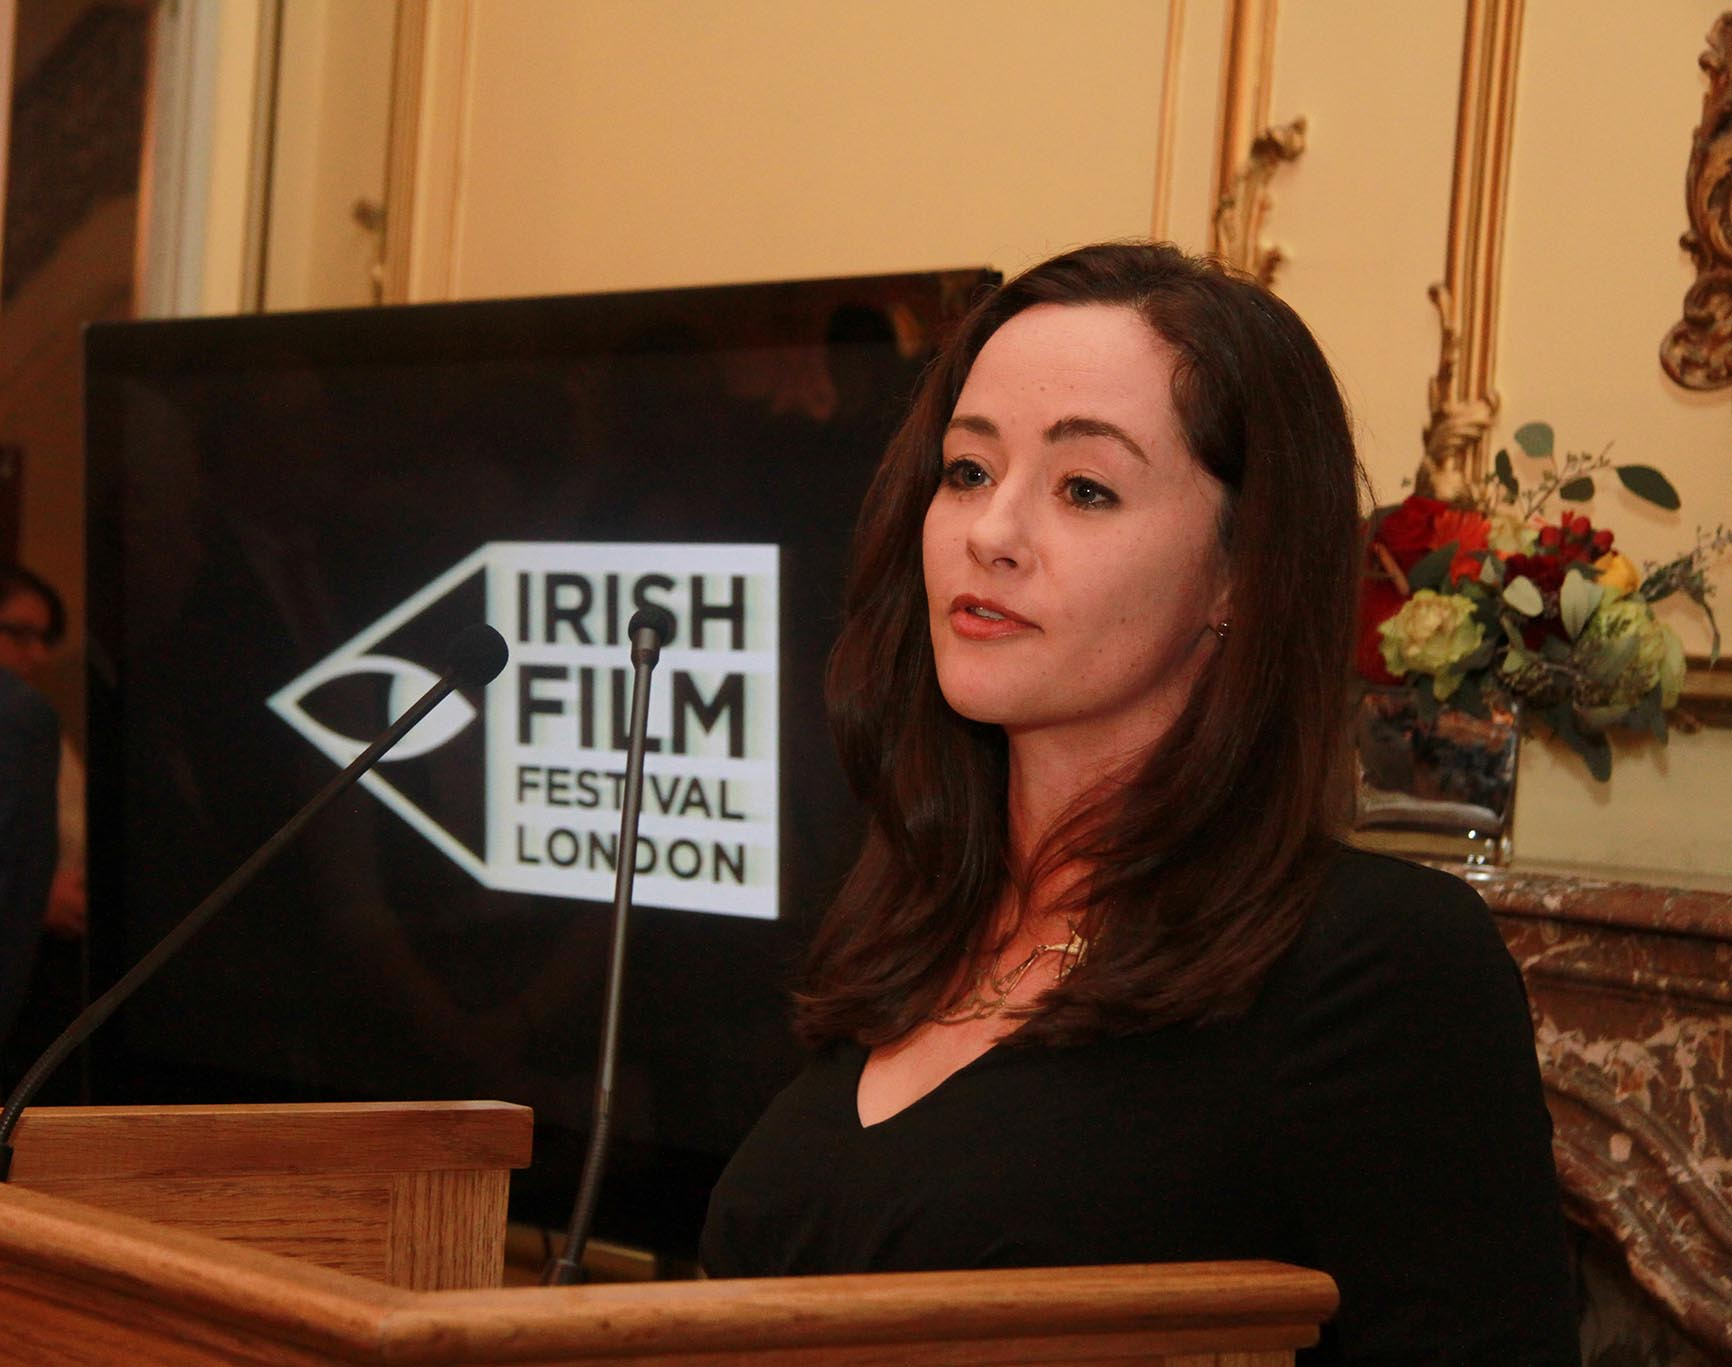 Founder and Director of Irish Film London, Kelly O'Connor